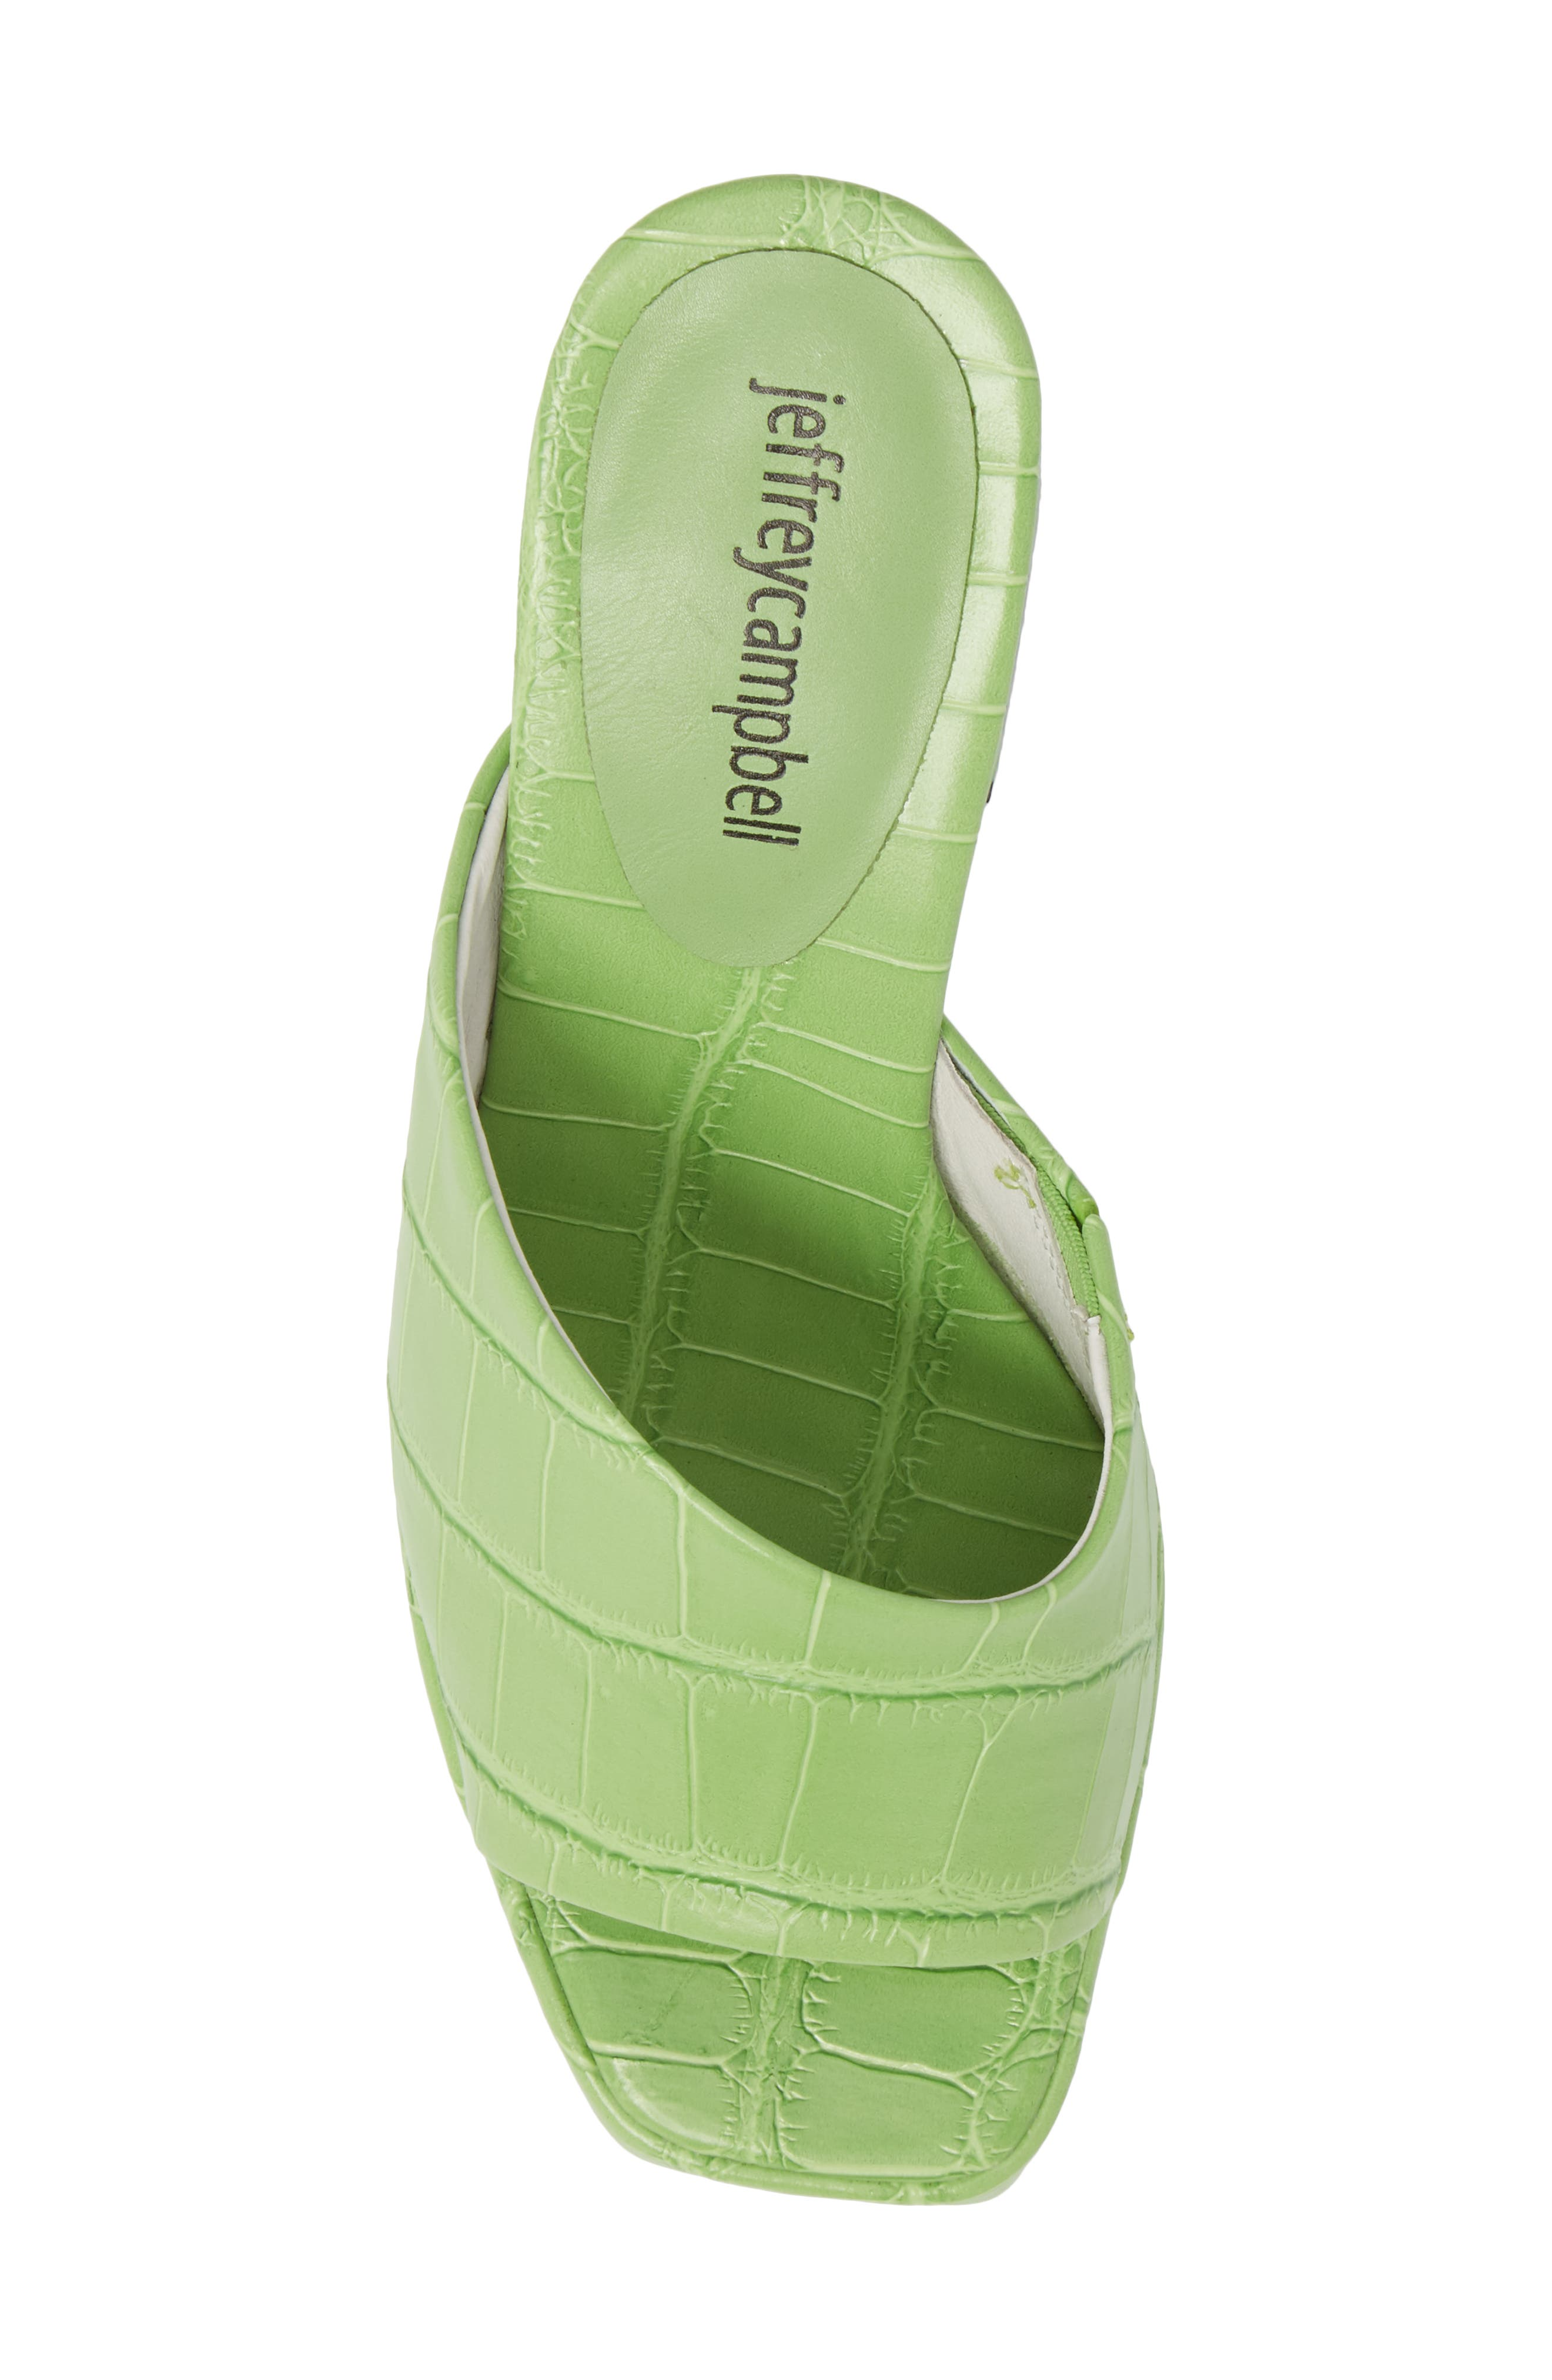 Suzuci Sandal,                             Alternate thumbnail 5, color,                             Green Leather